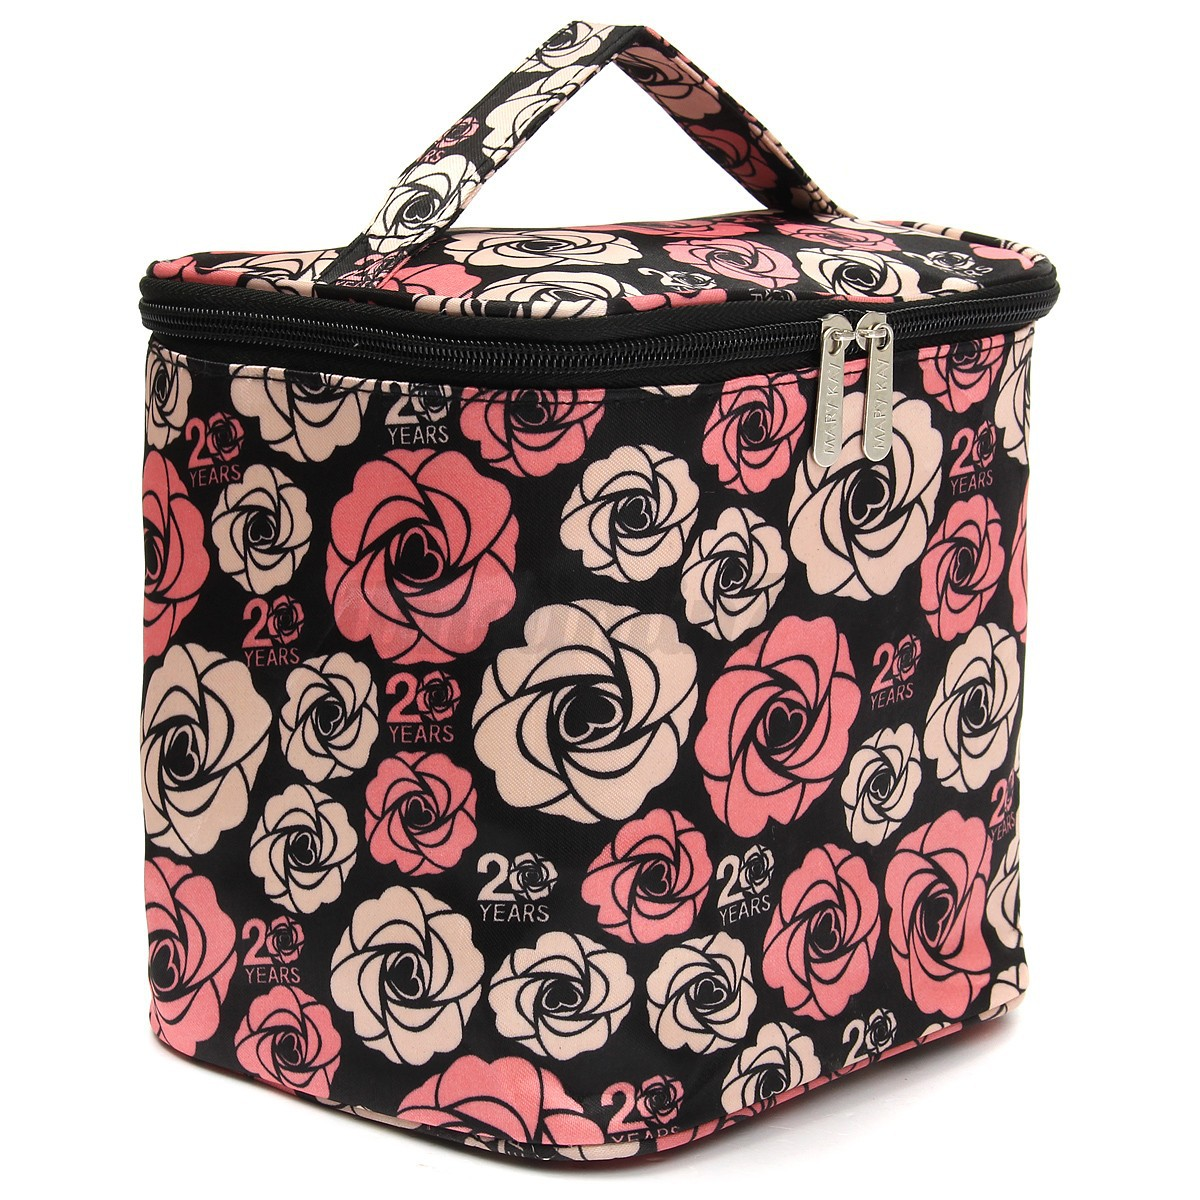 maquillage pochette trousse de toilette organisateur sac main rangement voyage ebay. Black Bedroom Furniture Sets. Home Design Ideas